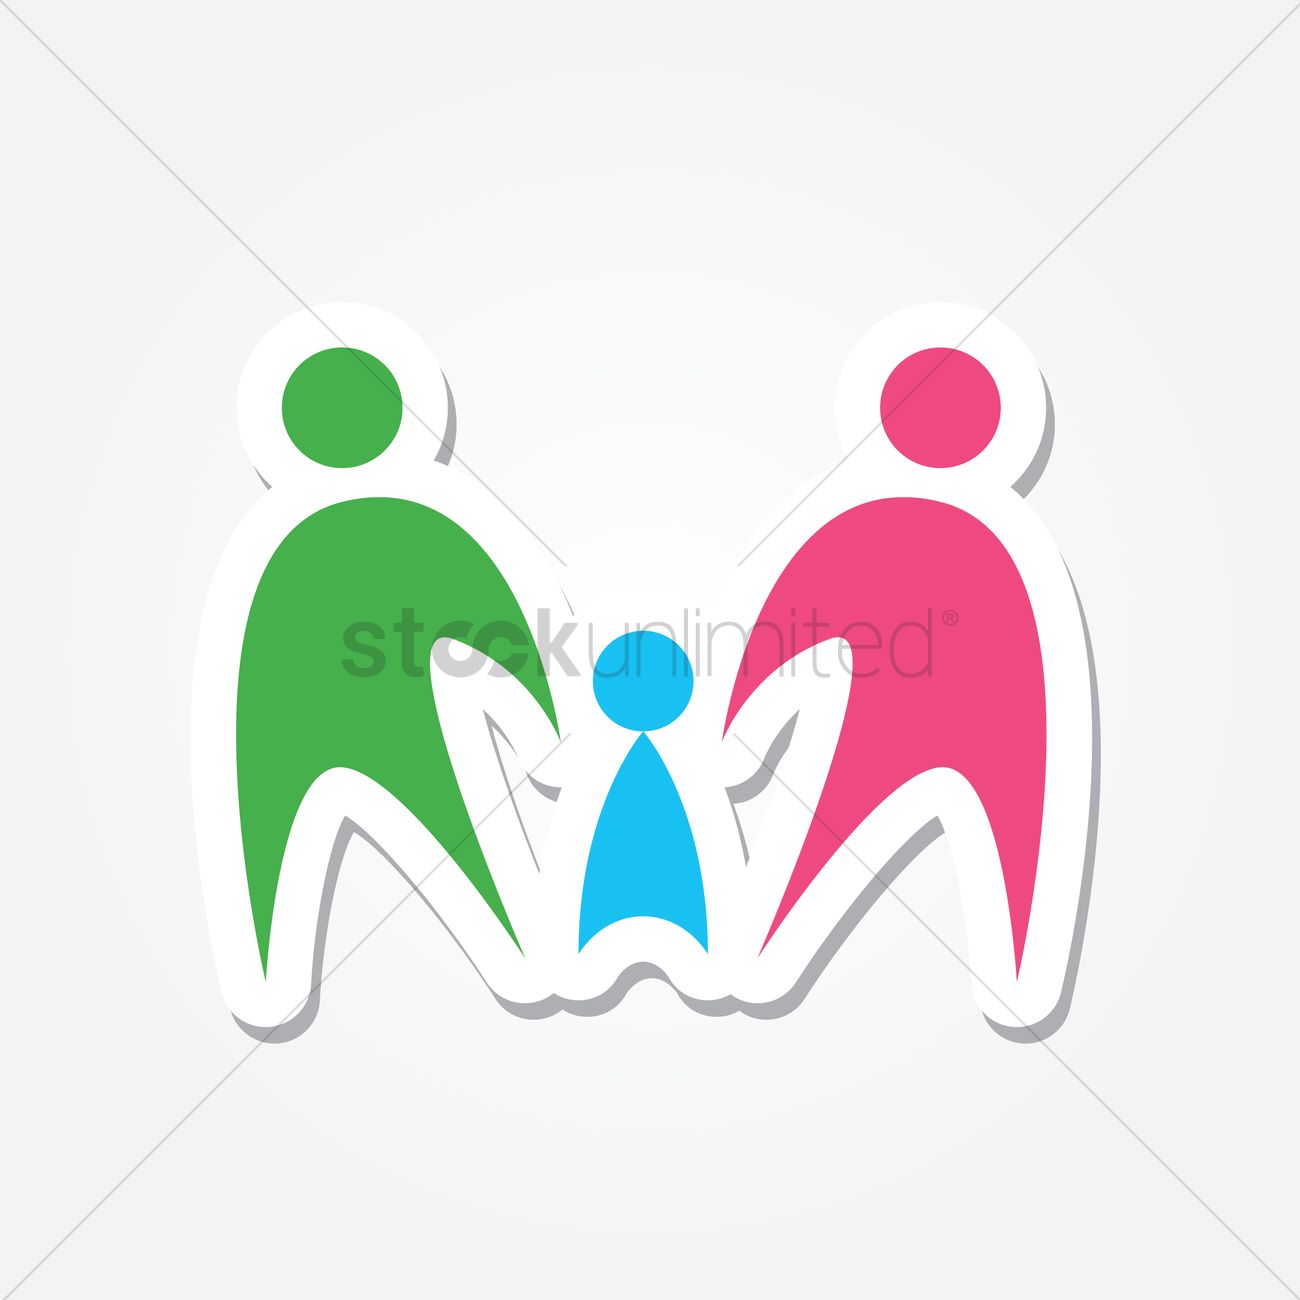 free family holding hands logo vector image 1243720 stockunlimited rh stockunlimited com holding hands logo design